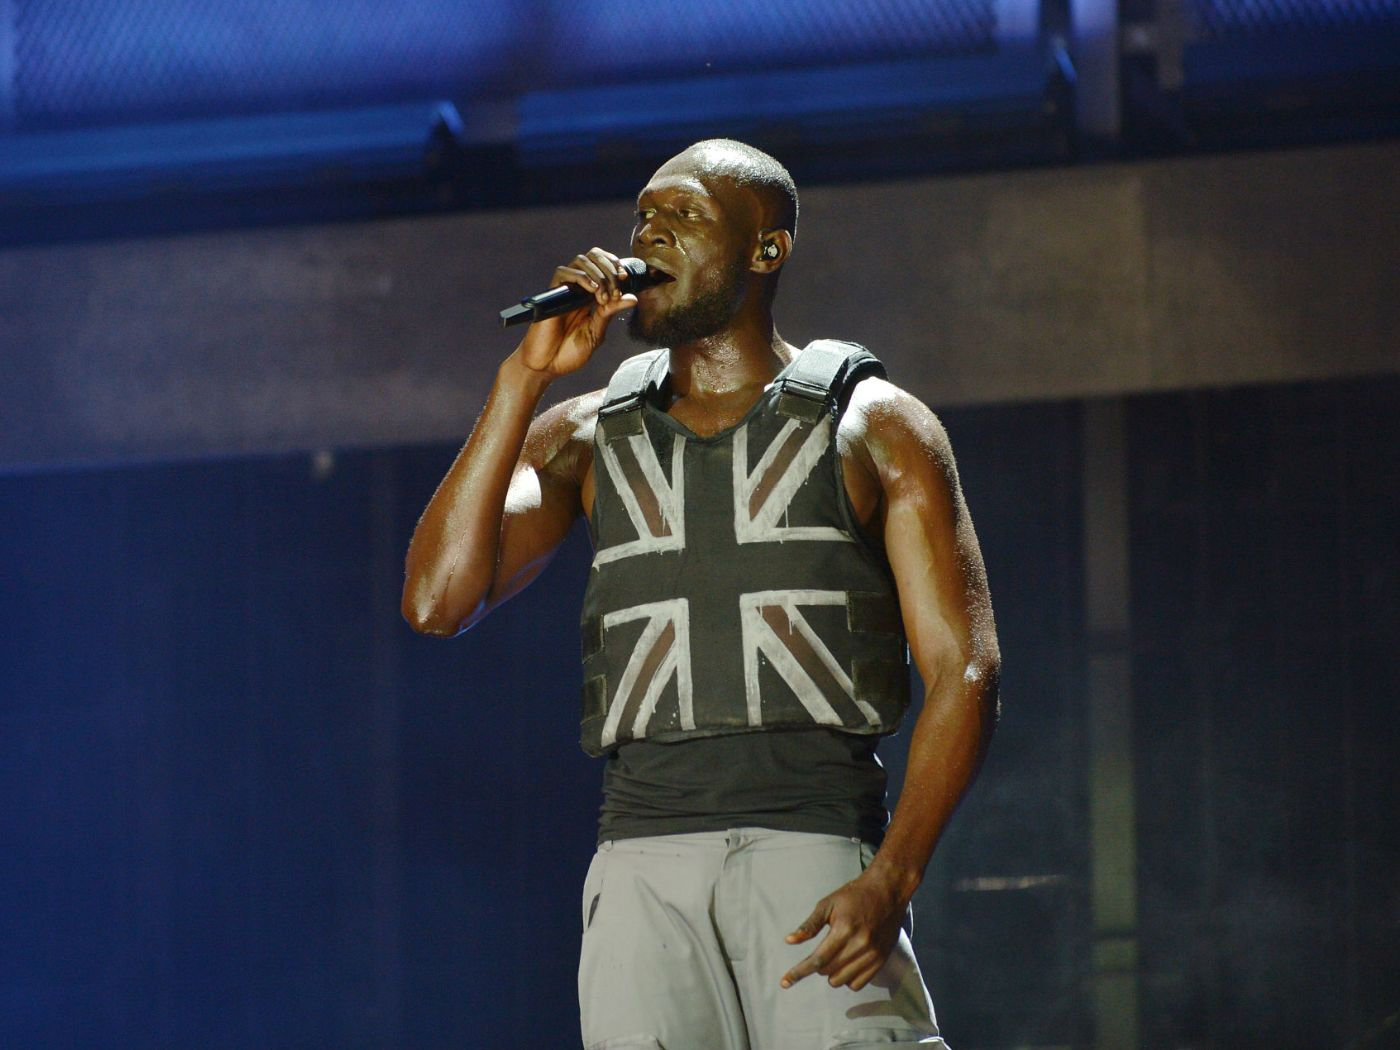 """Stormzy breaks silence on Michael Gove tweet: """"It's a weaponised tactic"""""""